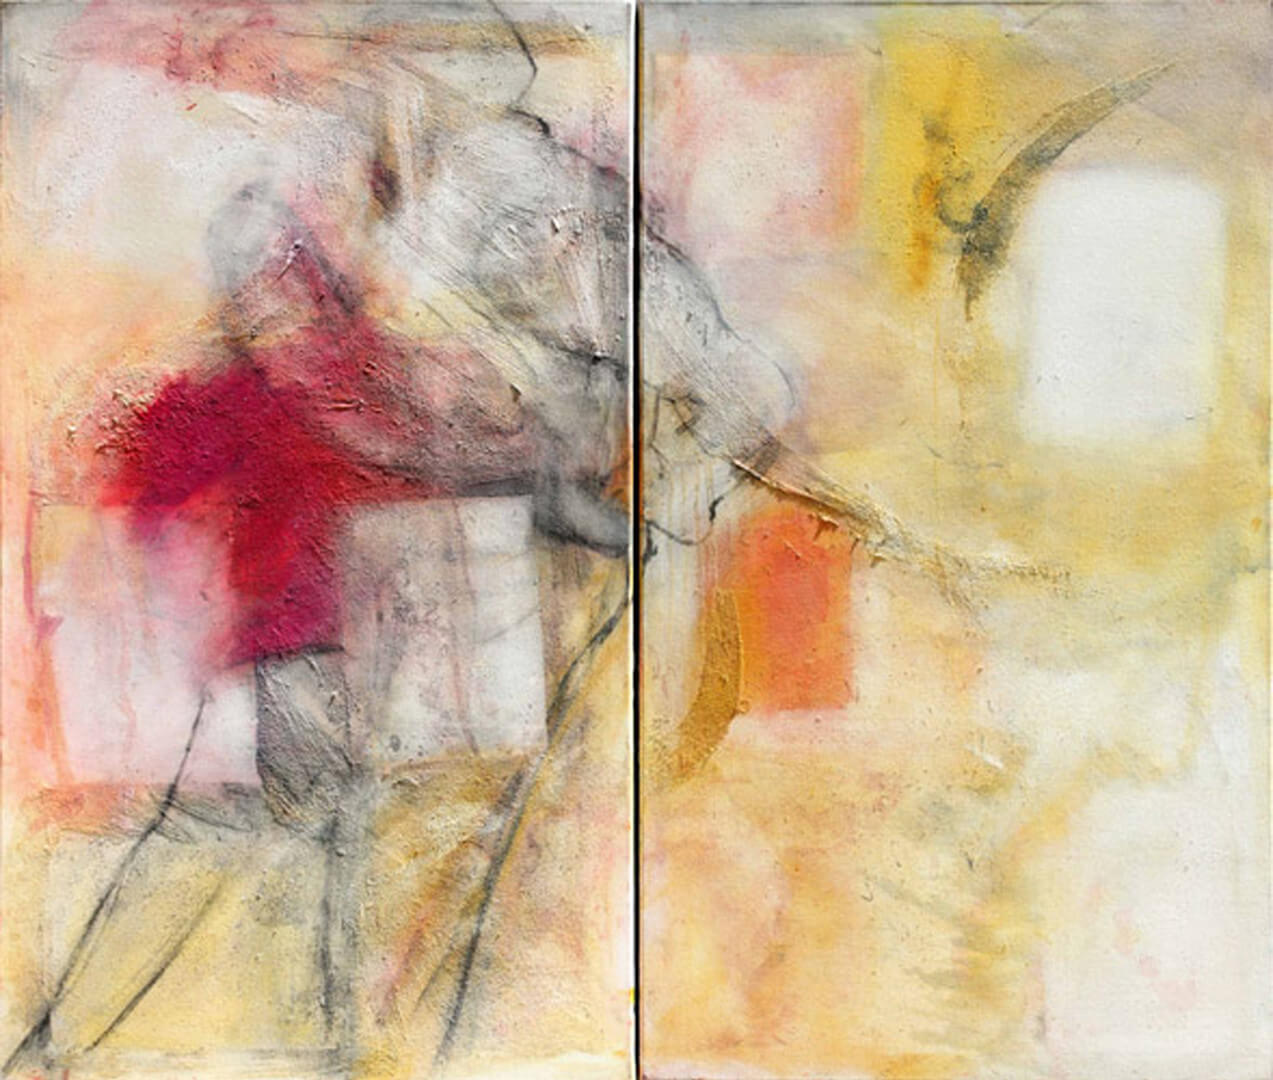 2007 - Oil on canvas. Diptych de 70 cm. x 120 cm. each.